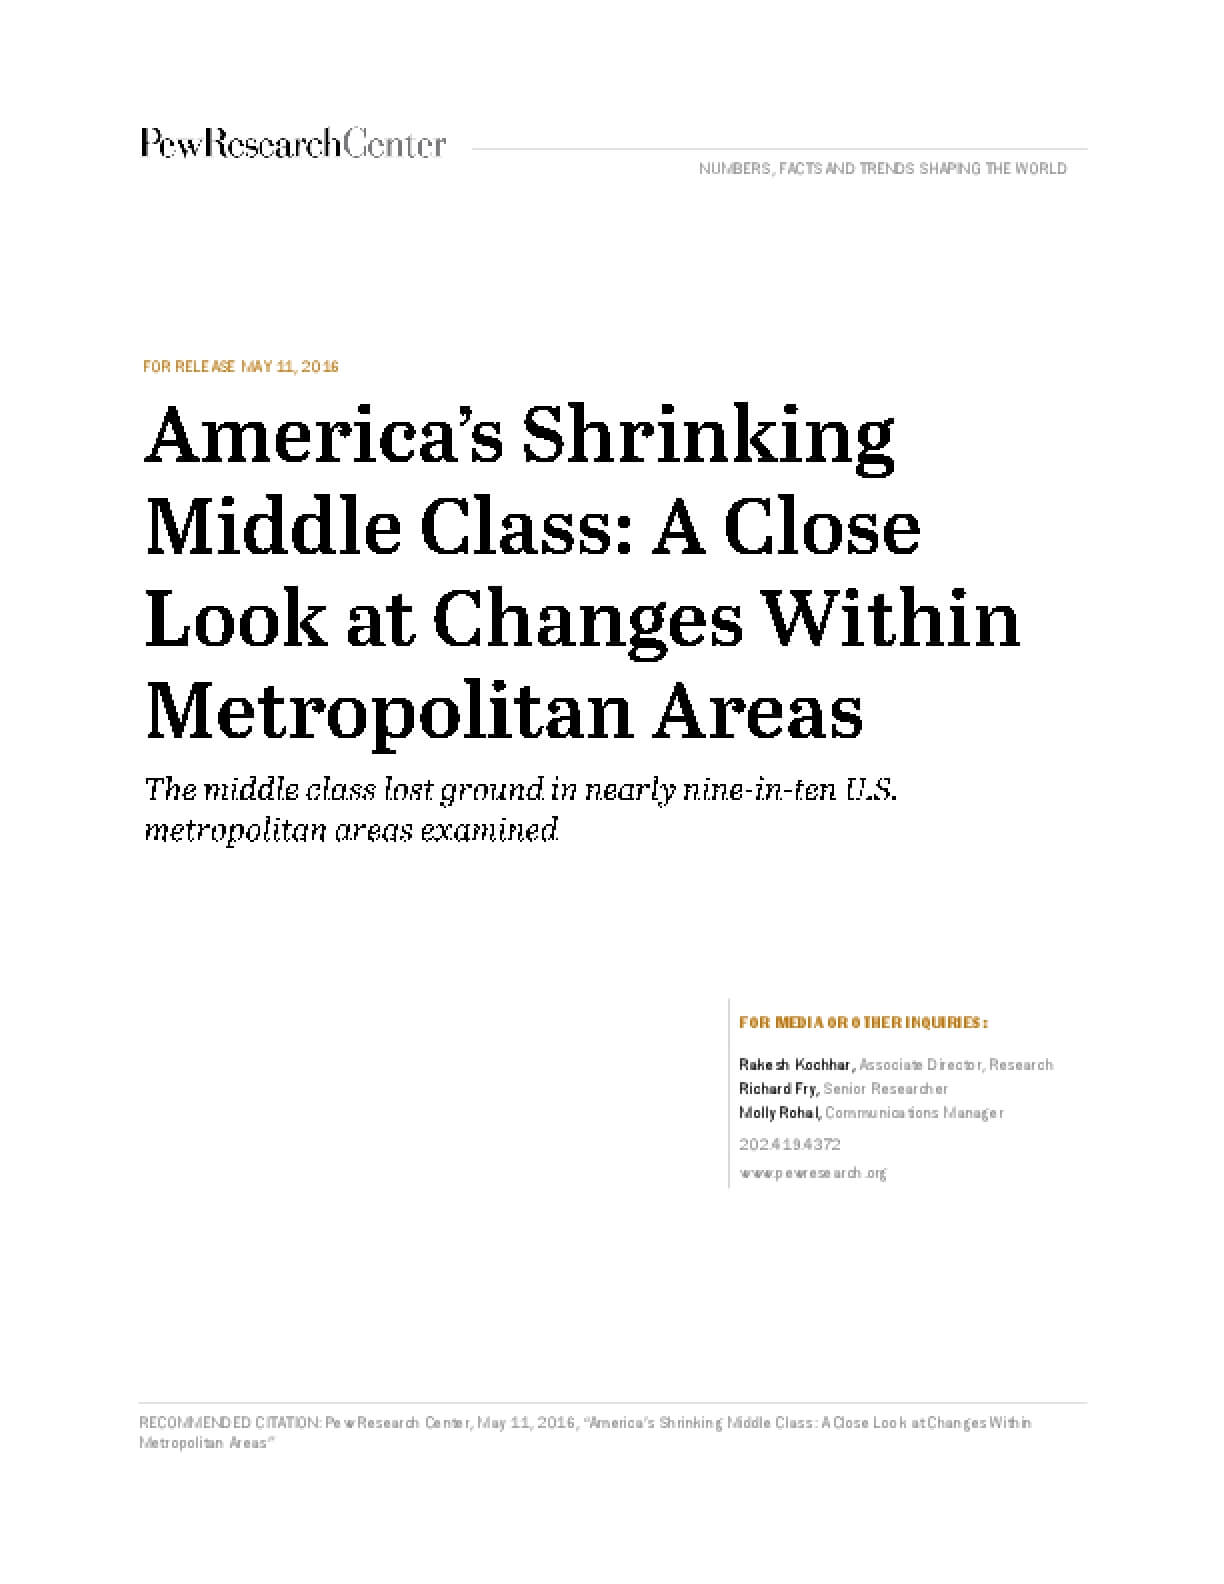 America's Shrinking Middle Class: A Close Look at Changes Within Metropolitan Areas